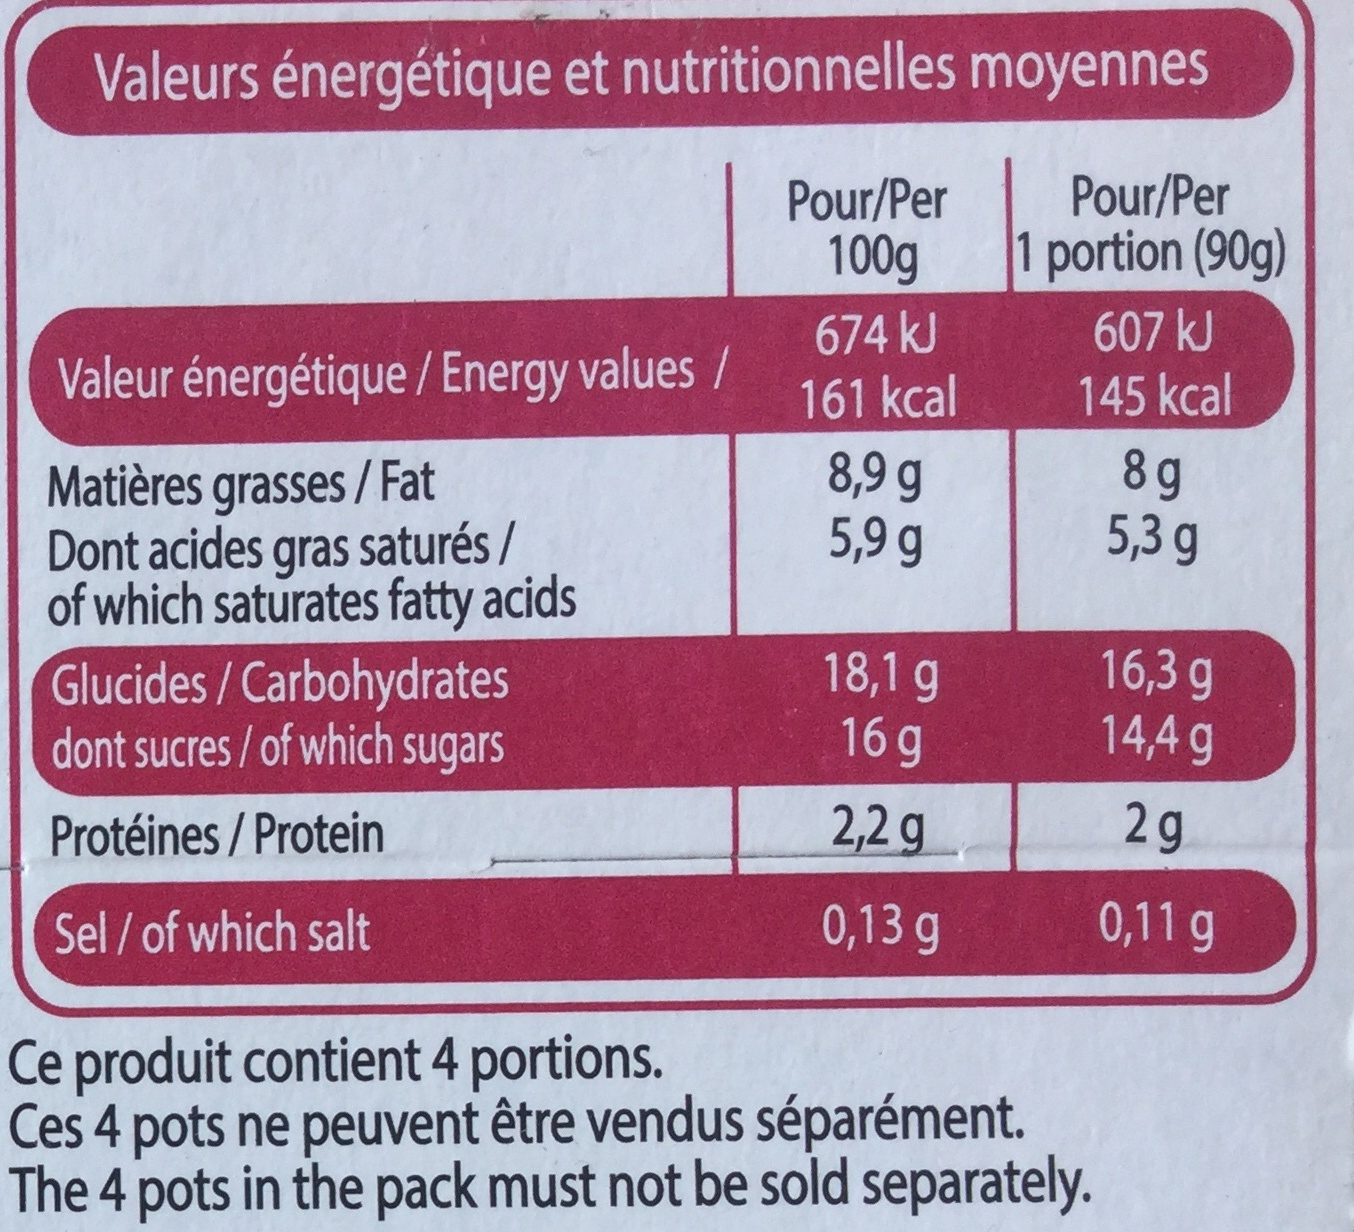 Panna cotta sur lit de fruits rouges - Nutrition facts - fr